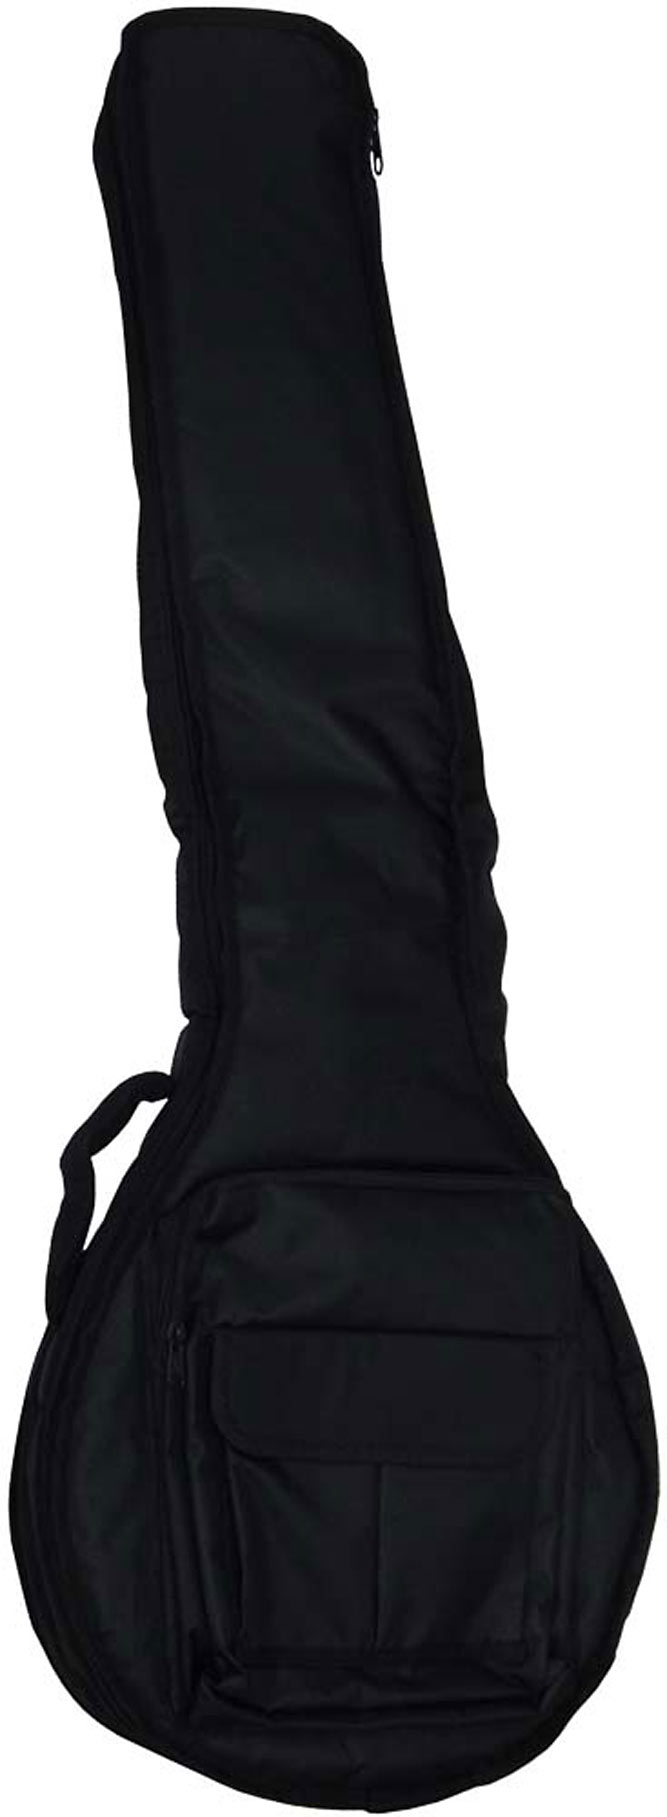 Viking Deluxe 5St Open Back Banjo Bag Tough black nylon outer with 20mm padding.